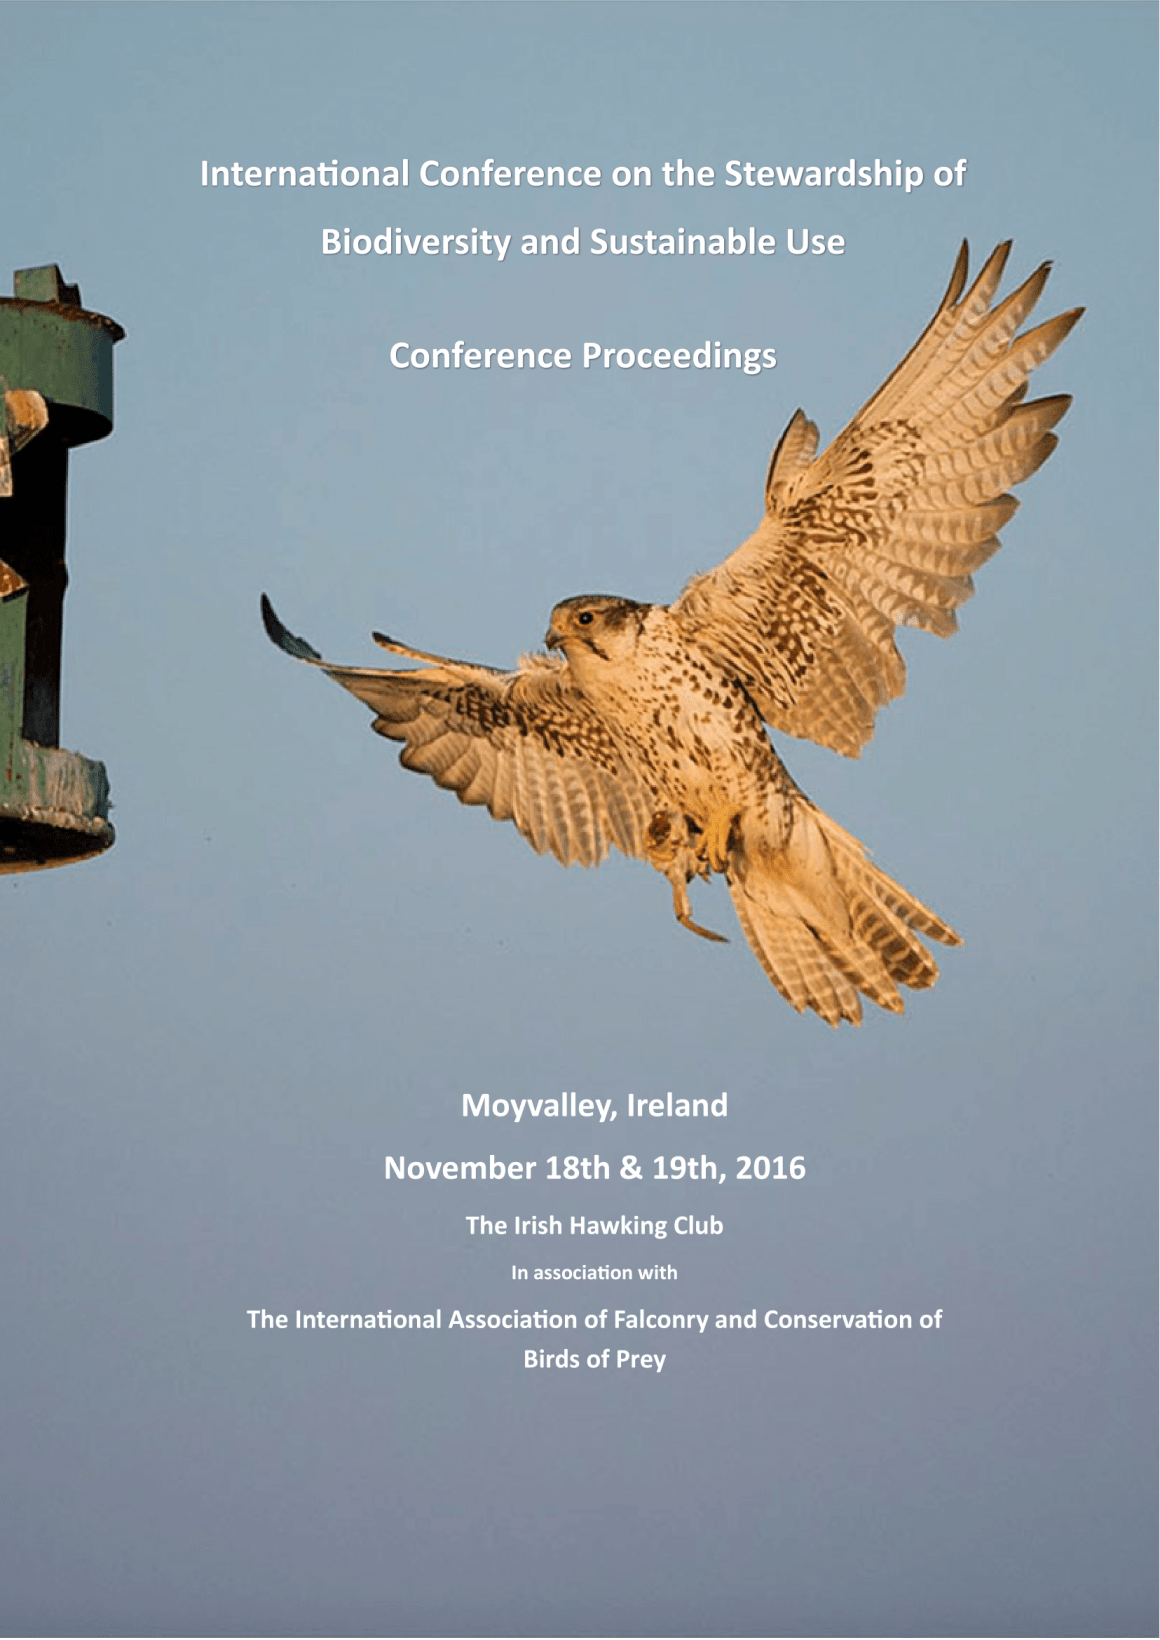 International Conference on Stewardship of Biodiversity and Sustainable Use